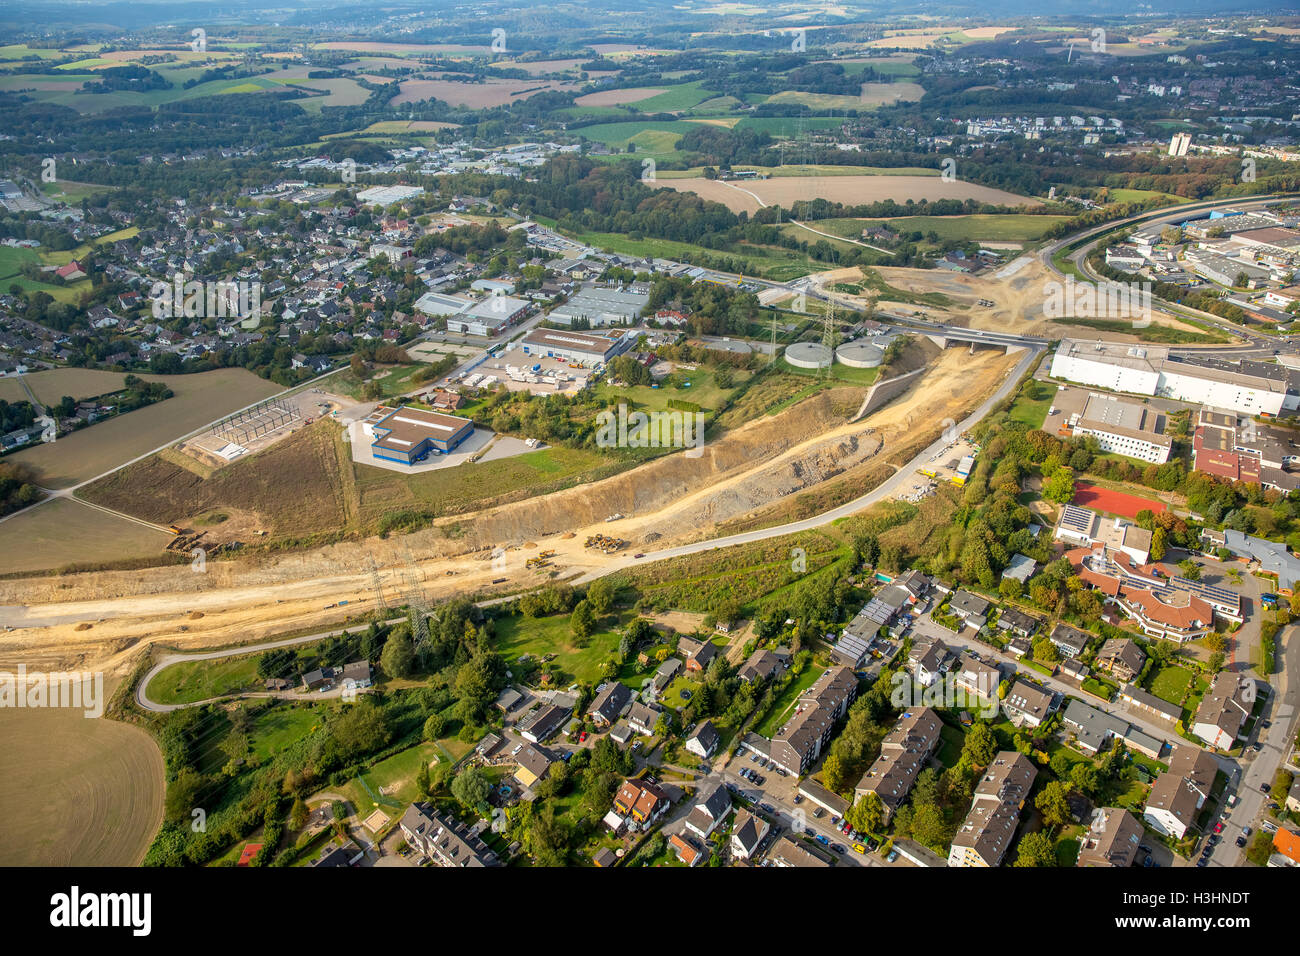 Aerial view, A44 extension between Velbert and Heiligenhaus, highway construction, Velbert, Ruhr area, North Rhine - Stock Image